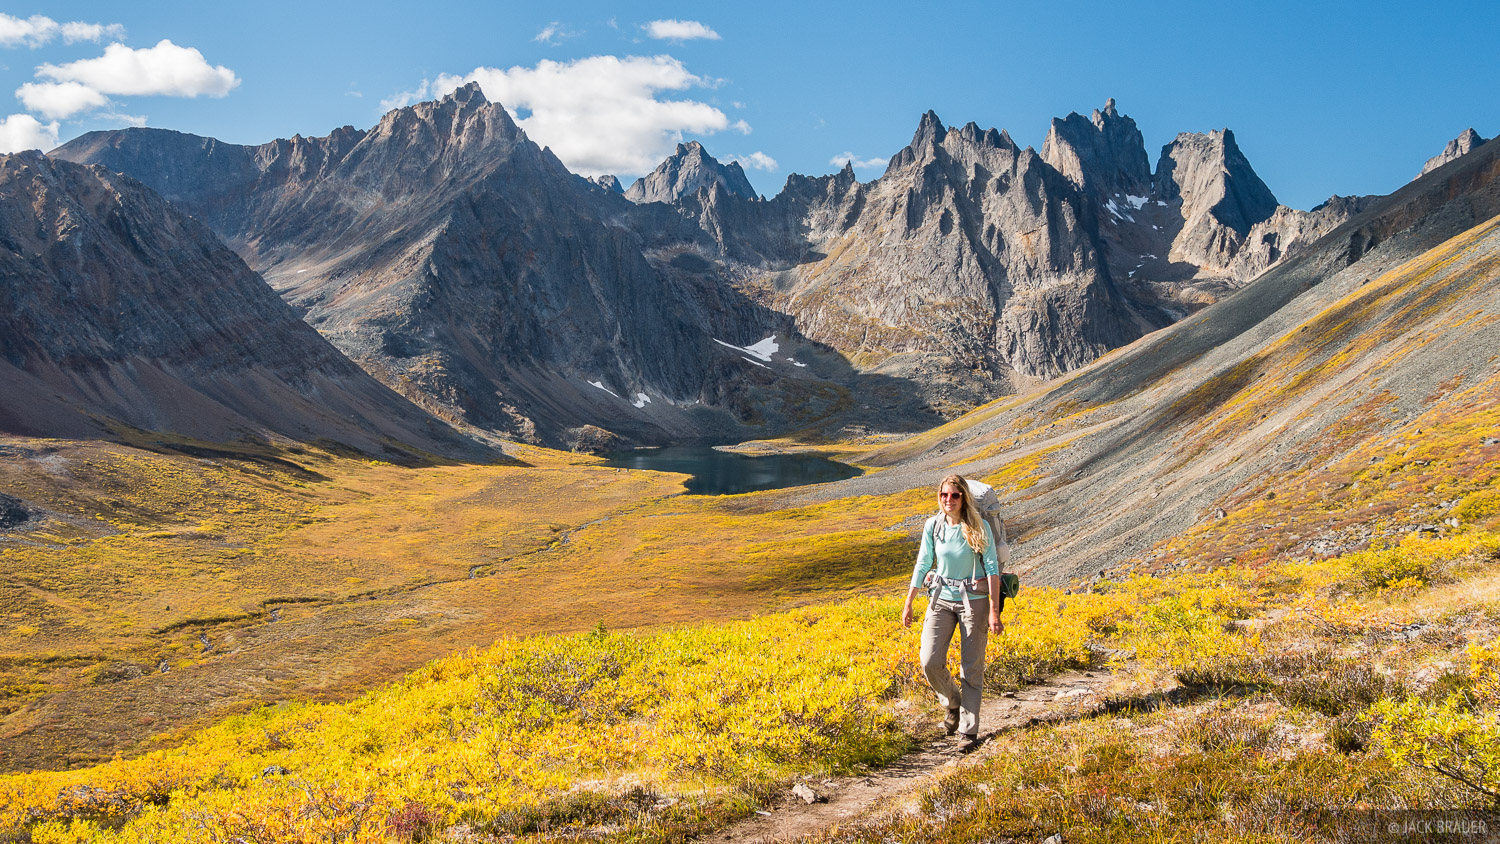 Canada, Mount Monolith, Tombstone Territorial Park, Yukon, hiking, Tombstone Range, photo